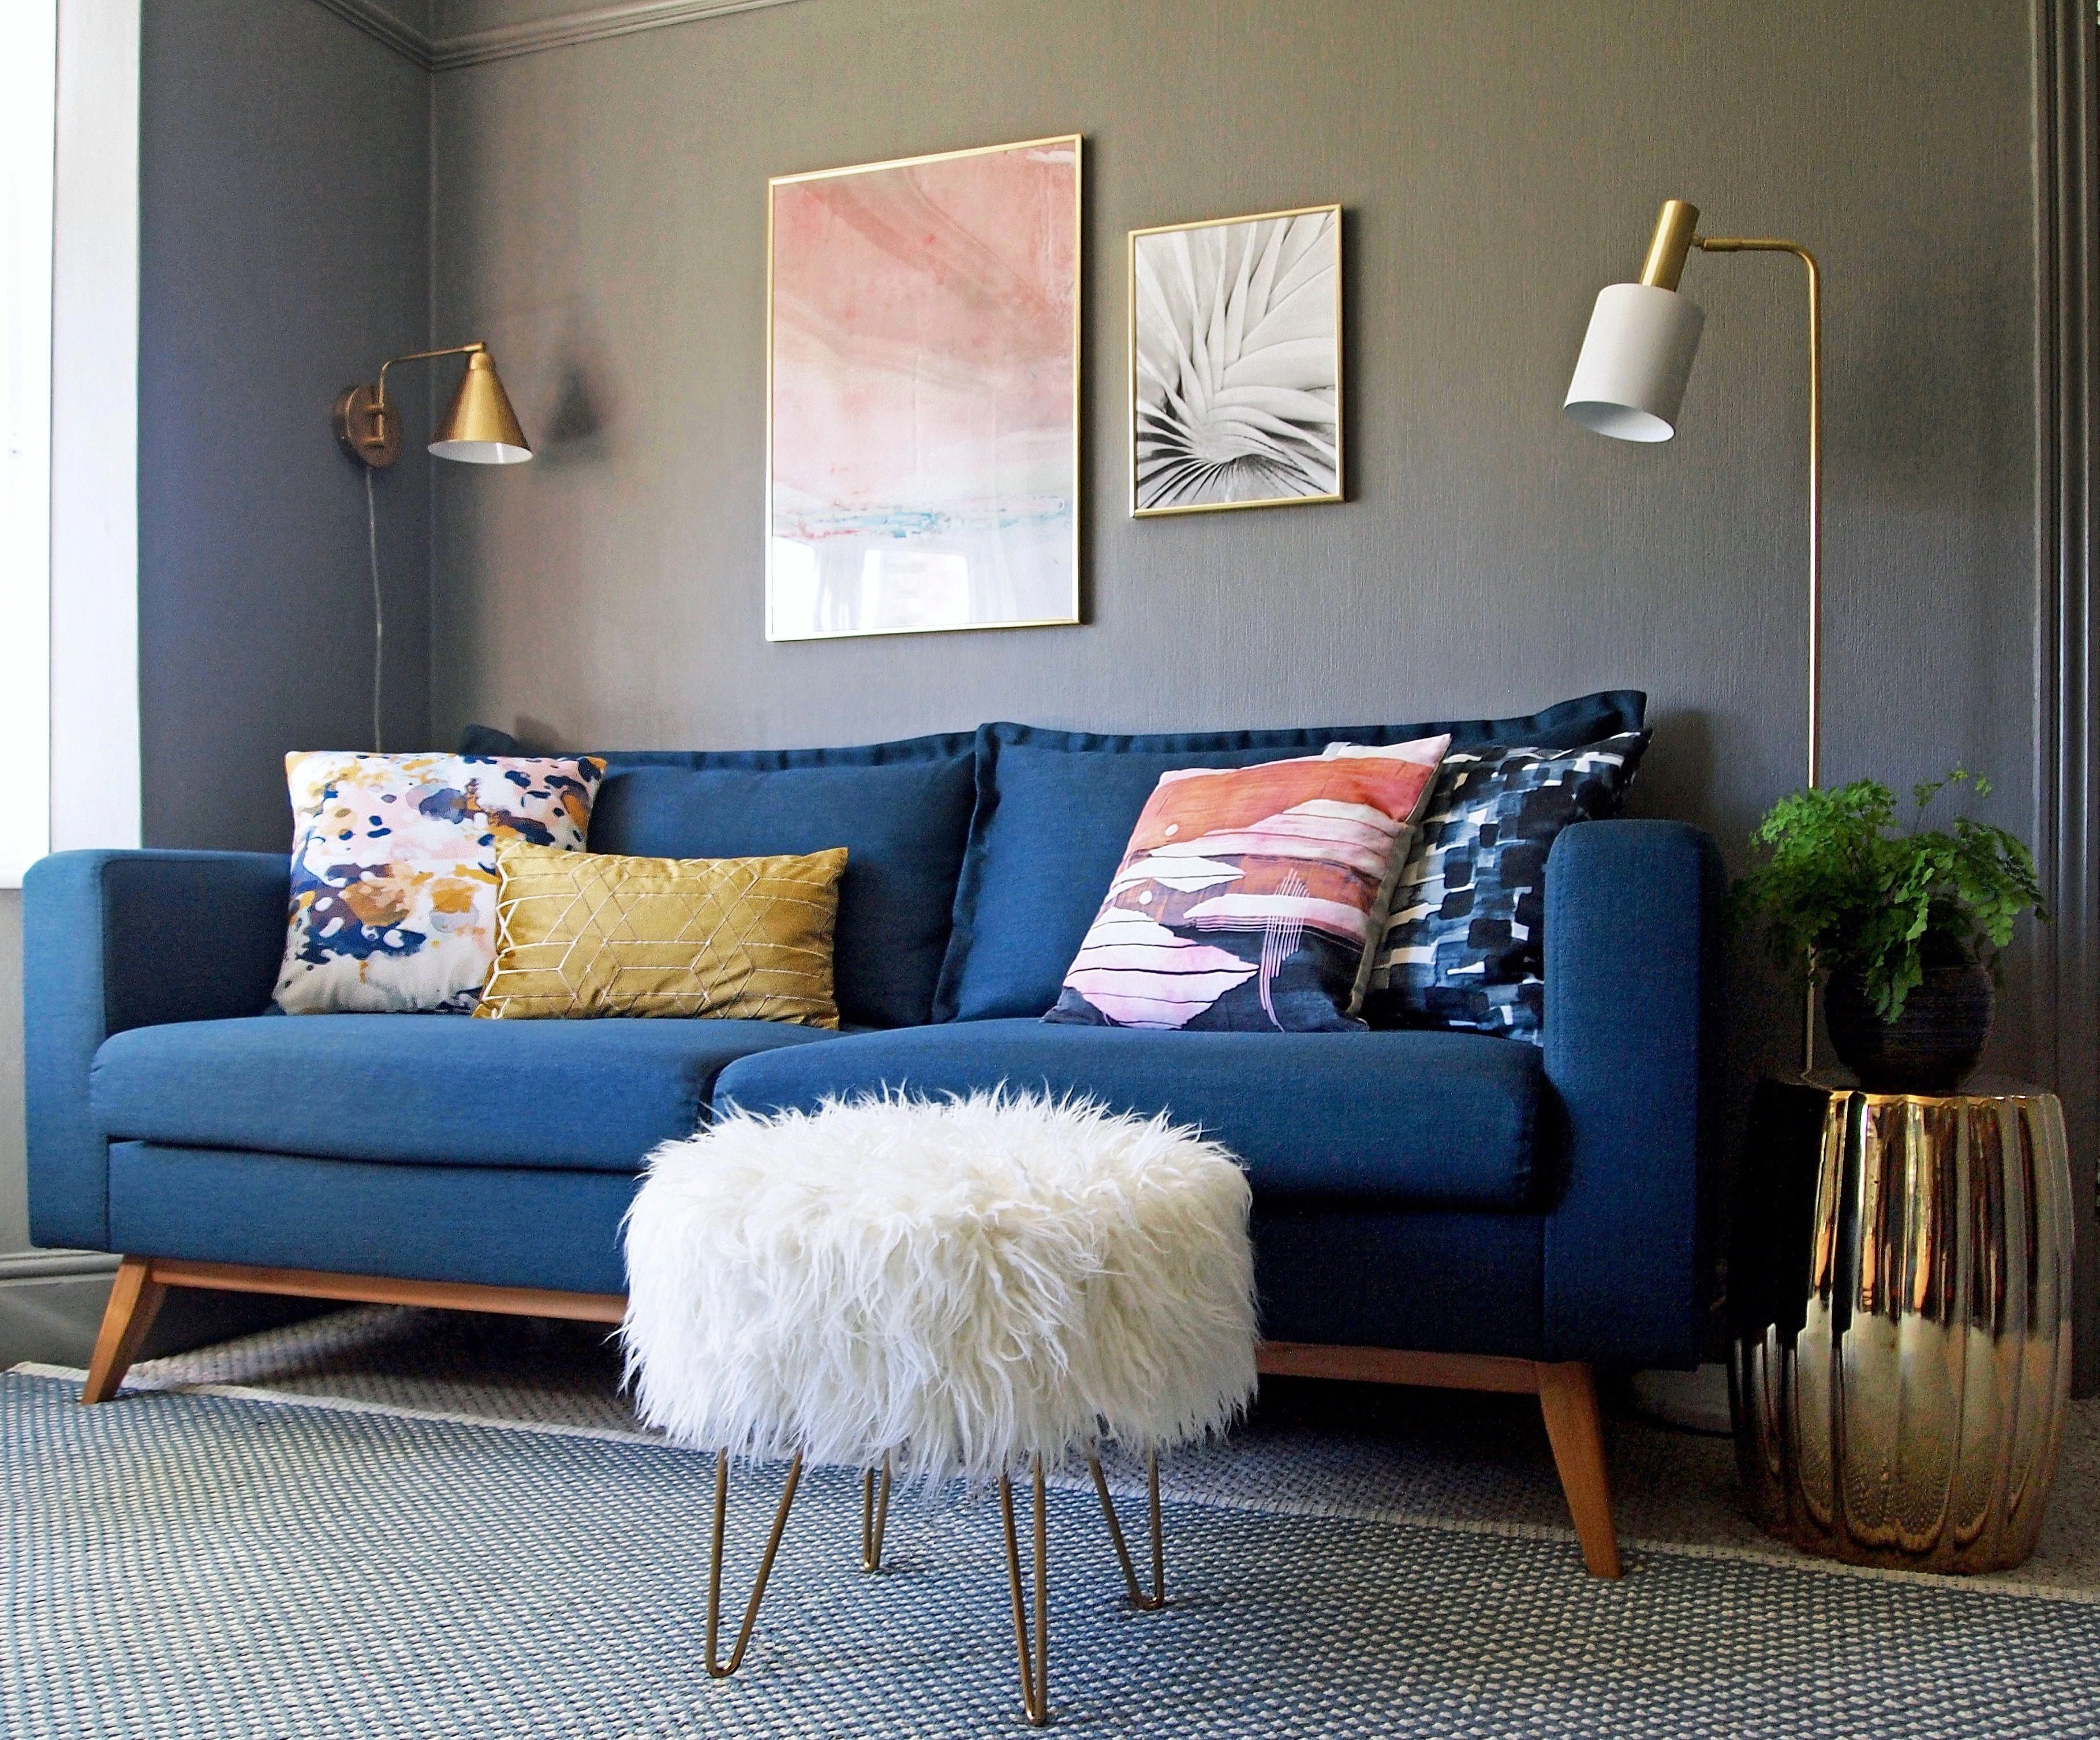 Living Room Design Blue Sofa Grey Walls And Accents In Pink White And Gold First Sense In Blue Living Room Decor Blue Sofas Living Room Blue Sofa Living